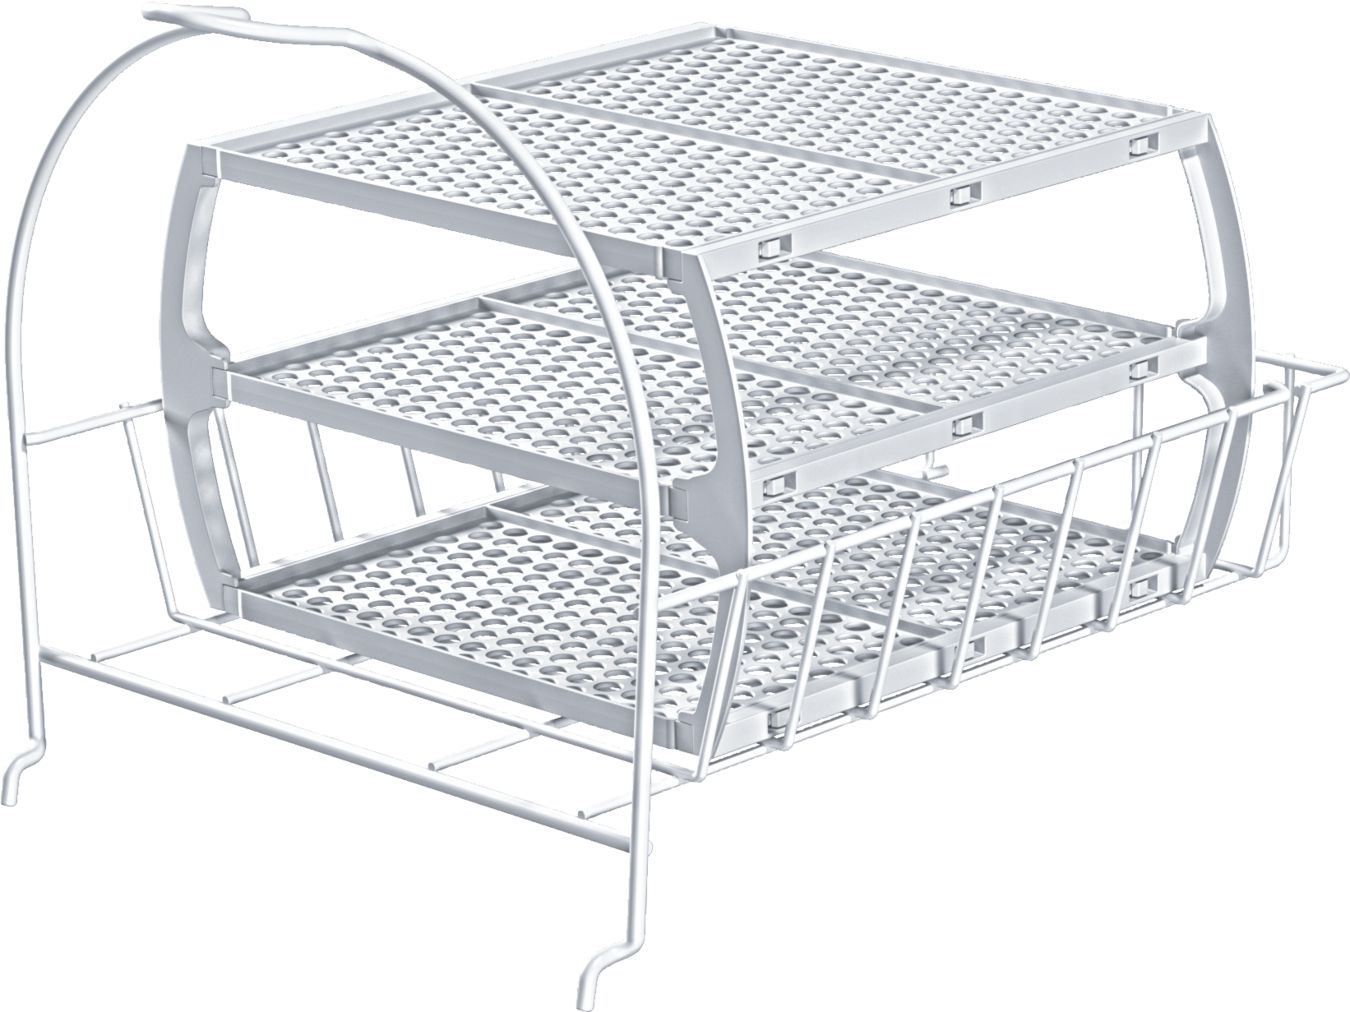 "Bosch WMZ20600Accessories Laundry CareDrying Rack for 24"" Dryers"